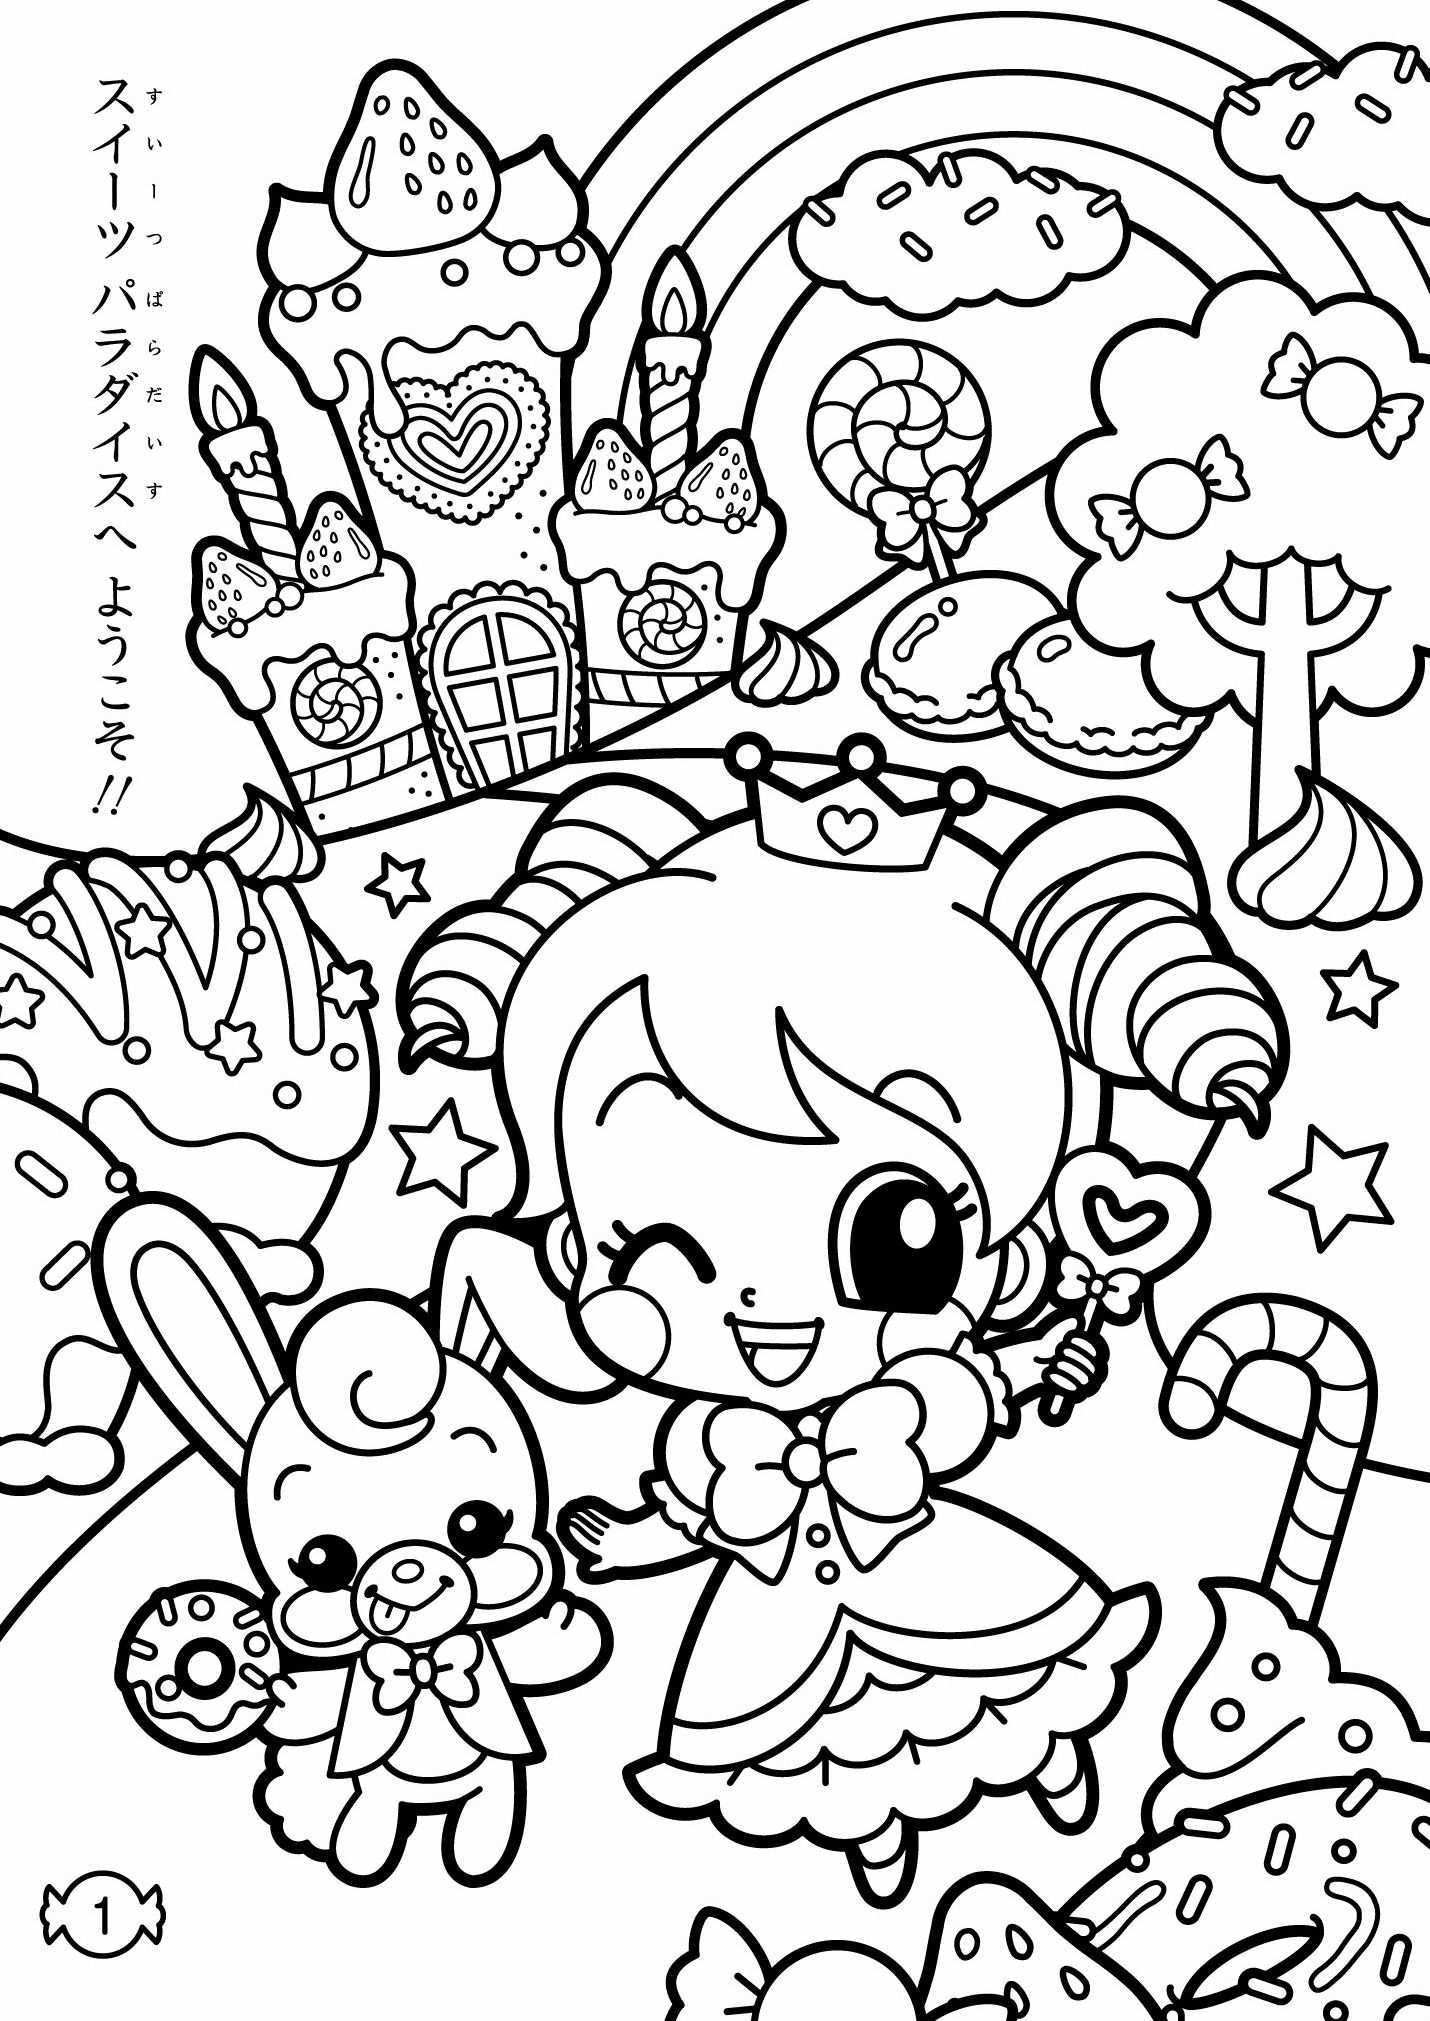 Kawaii Unicorn Coloring Pages Cute Coloring Pages Animal Coloring Pages